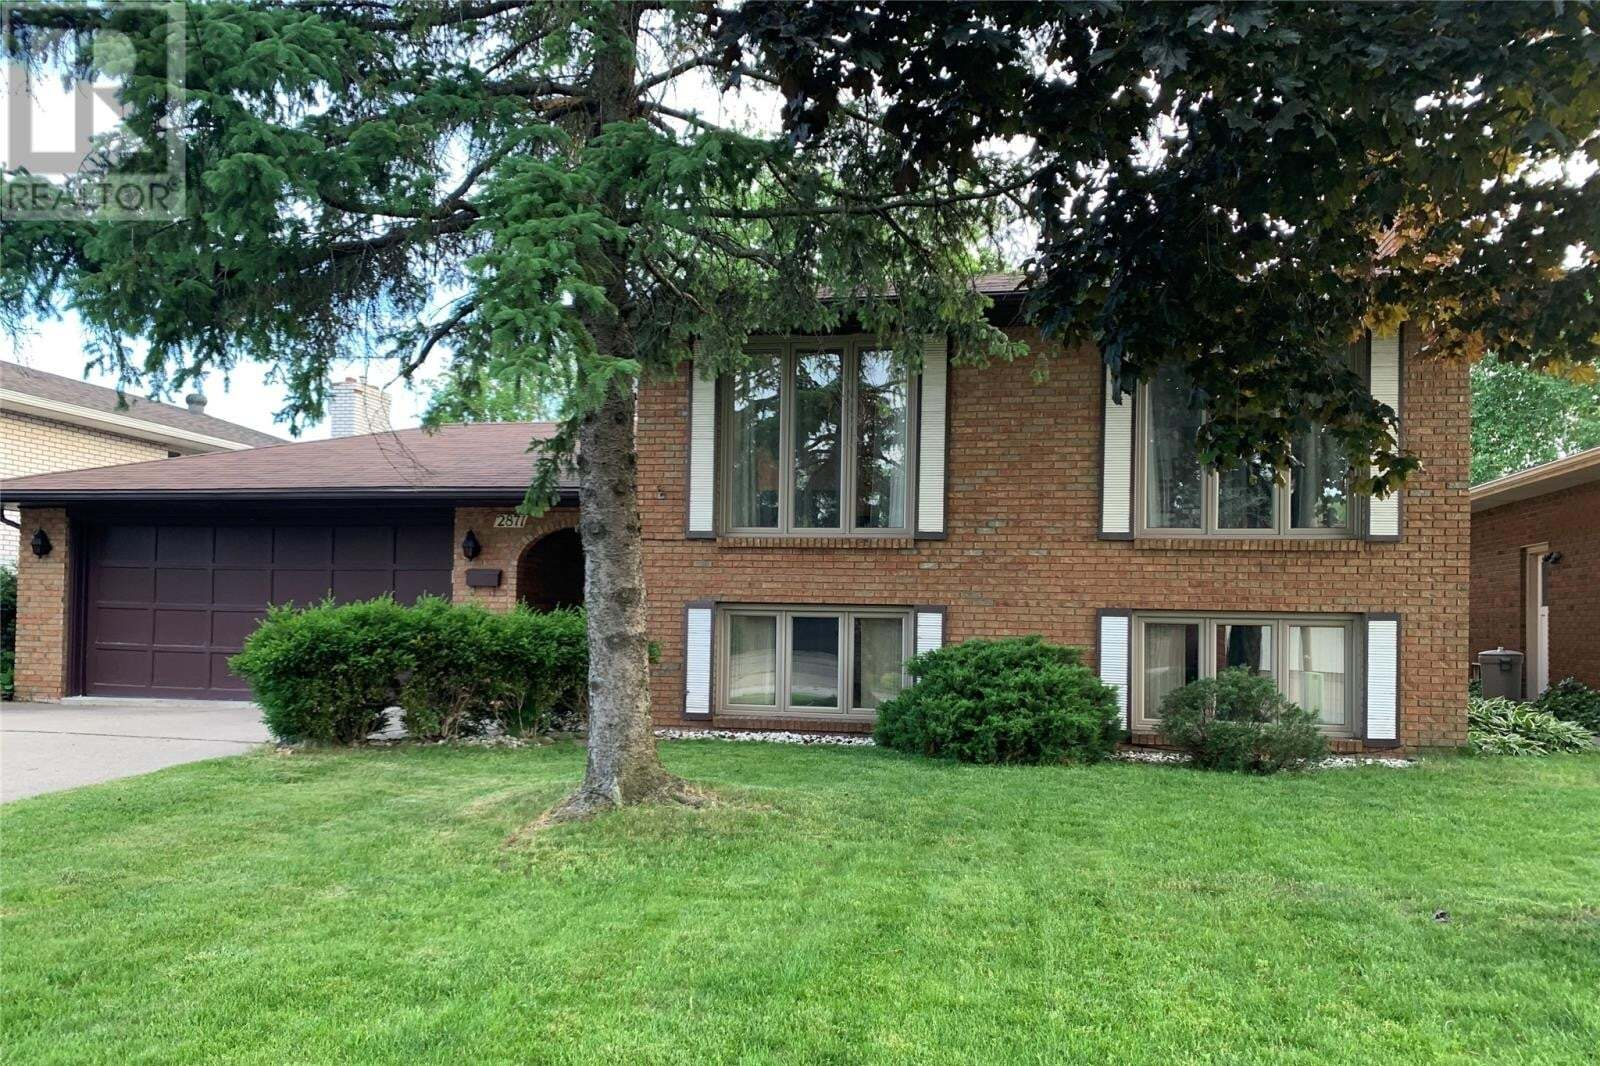 House for sale at 2871 St. Clair  Windsor Ontario - MLS: 20006429